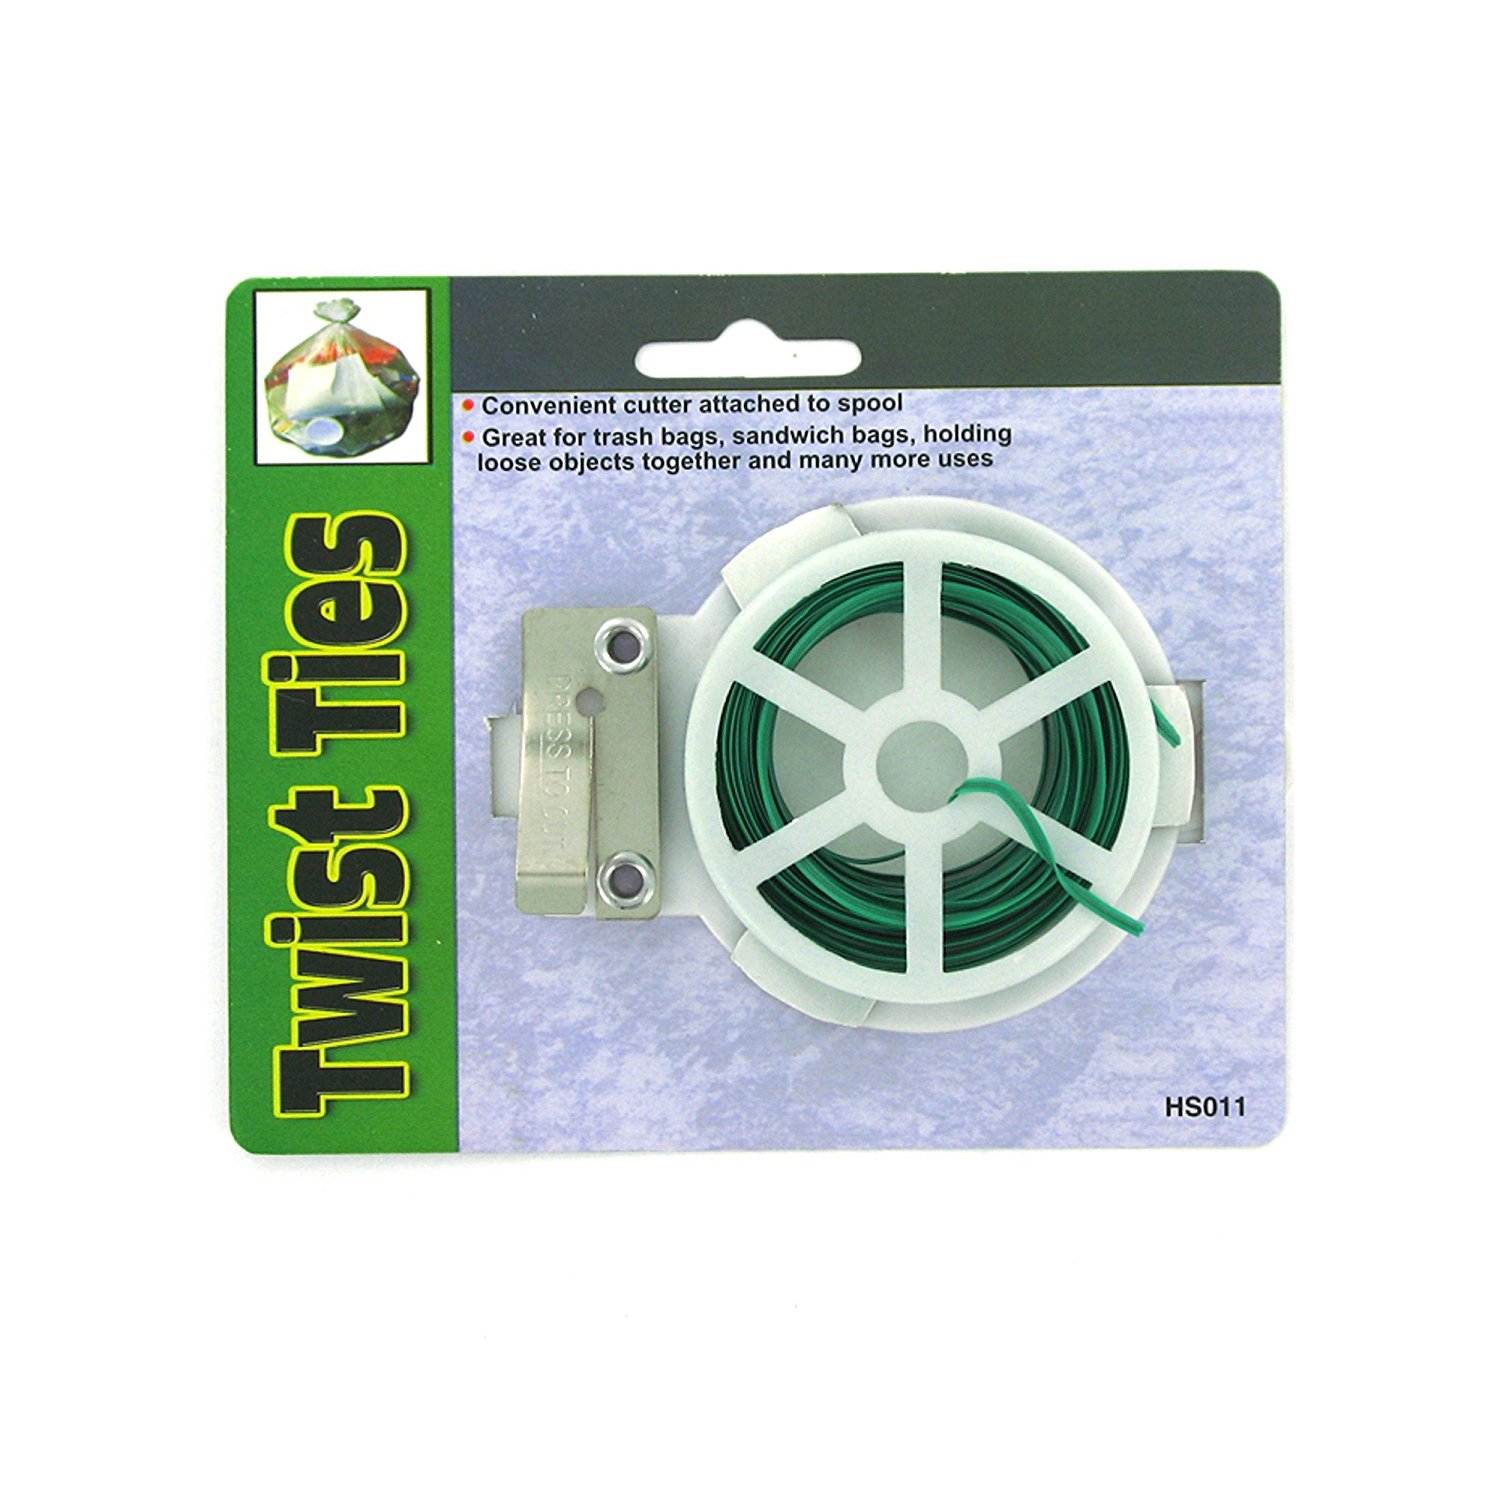 123-Wholesale - Set of 36 Twist Ties with Reel - Lawn & Garden Garden Tools